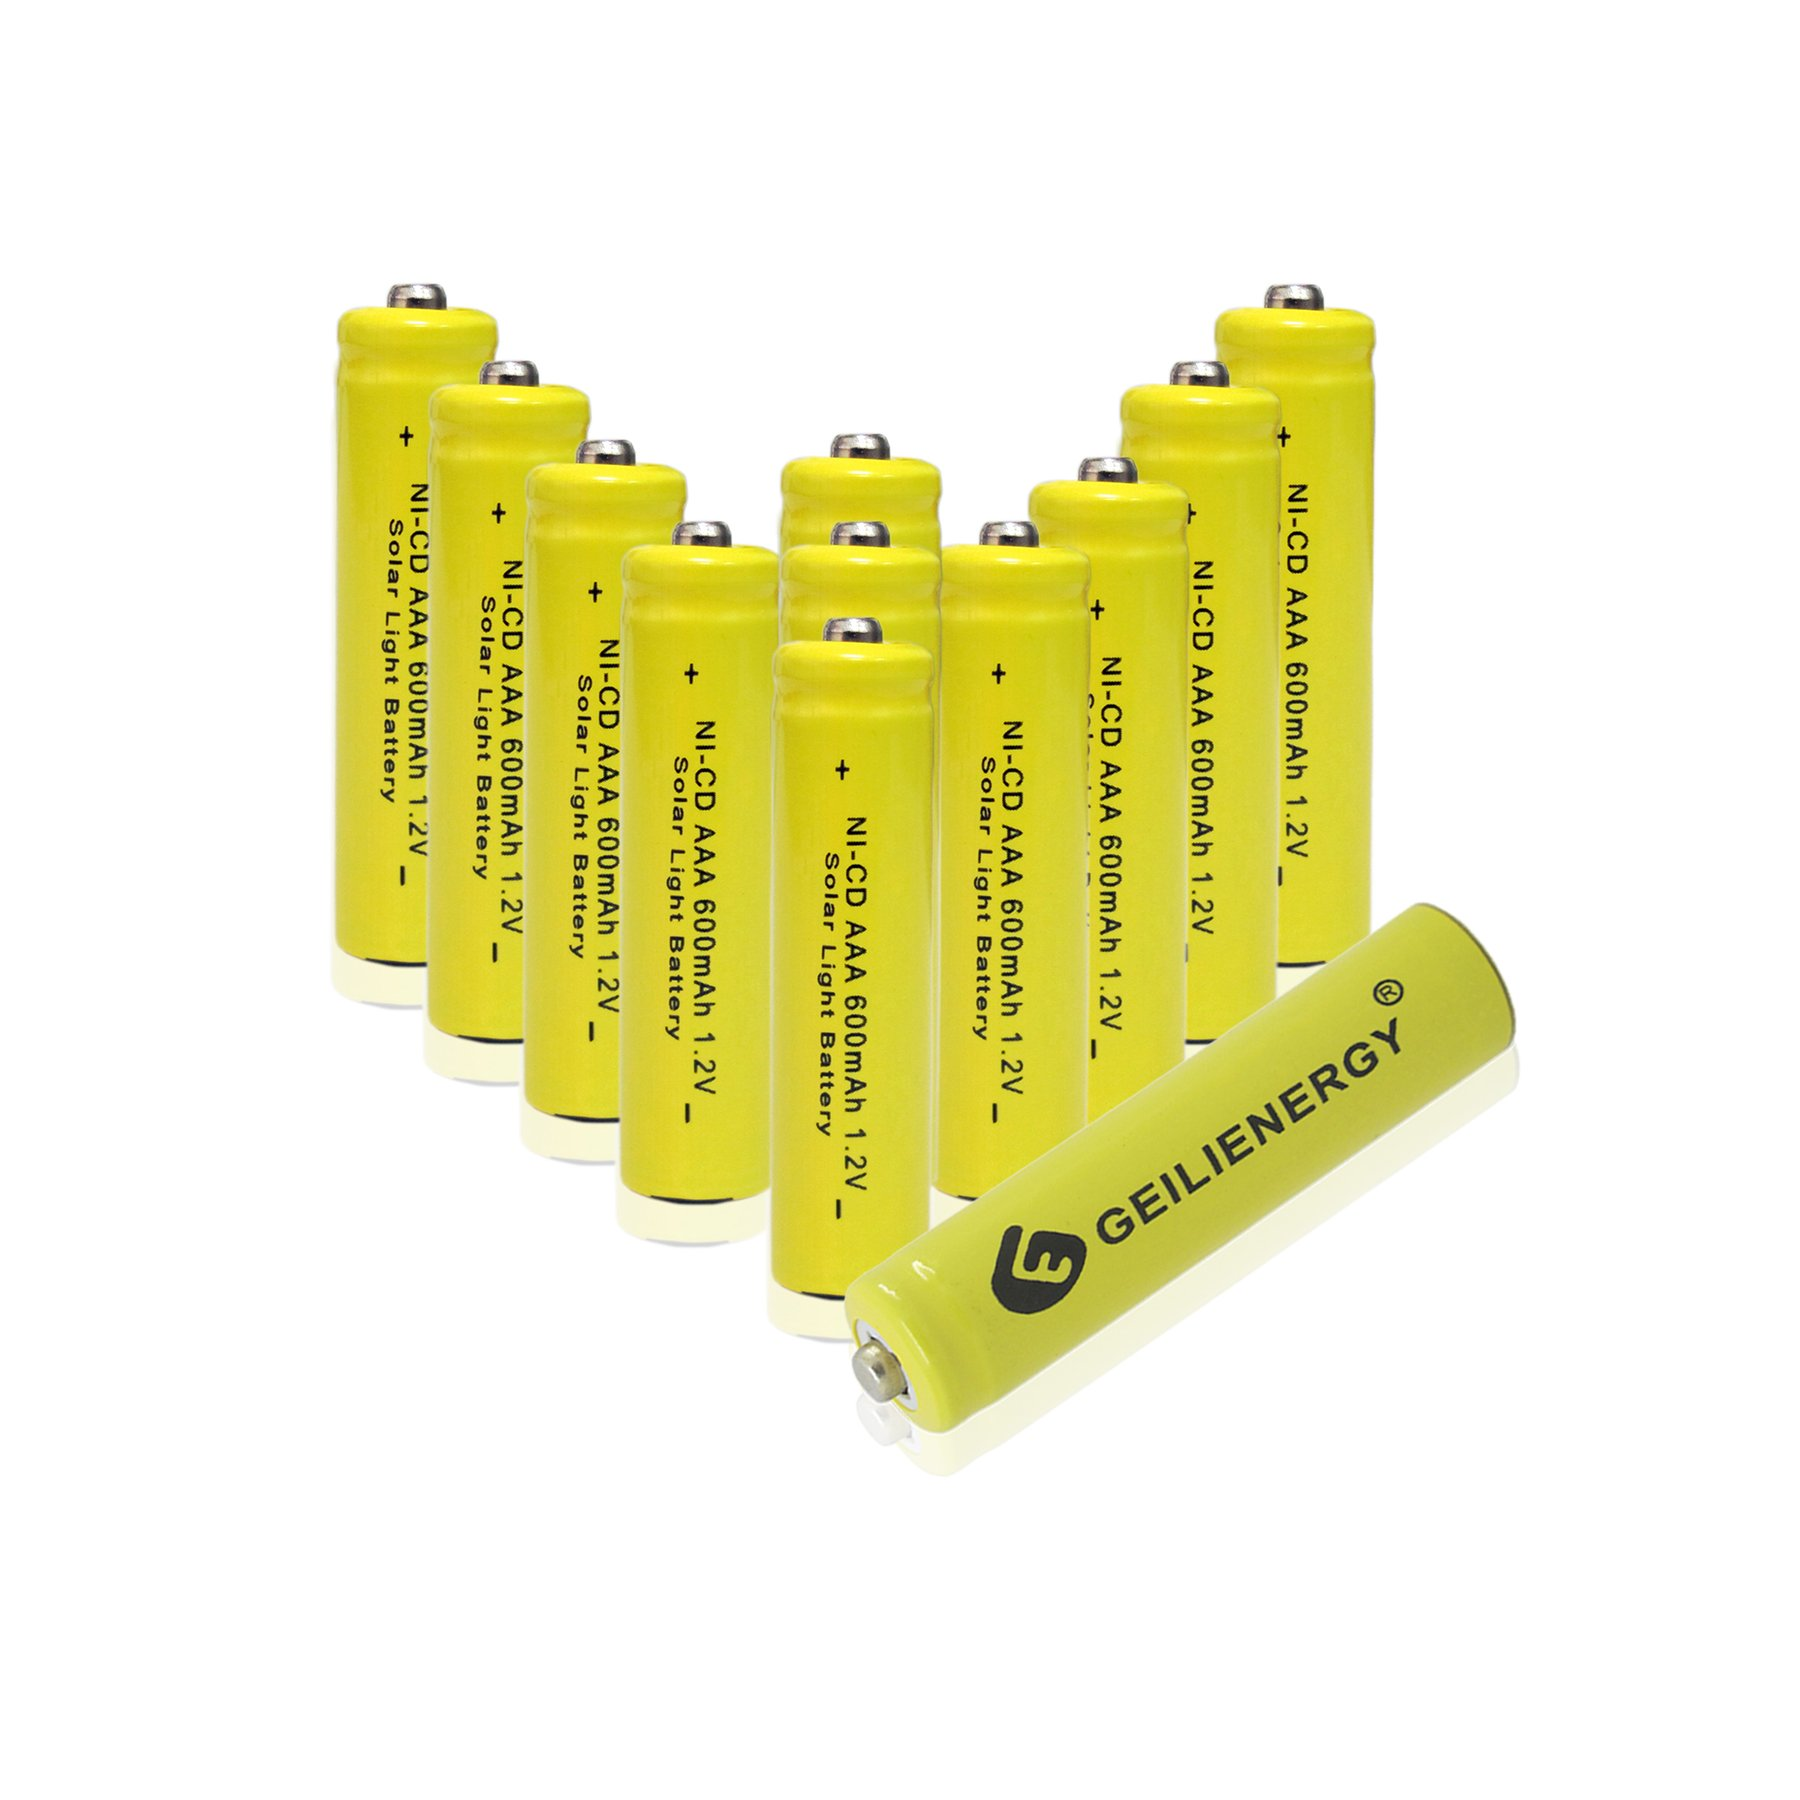 GEILIENERGY NiCd AAA 1.2V 600mAh Triple A Rechargeable Batteries for Solar Light Lamp Yellow Color (Pack of 12)